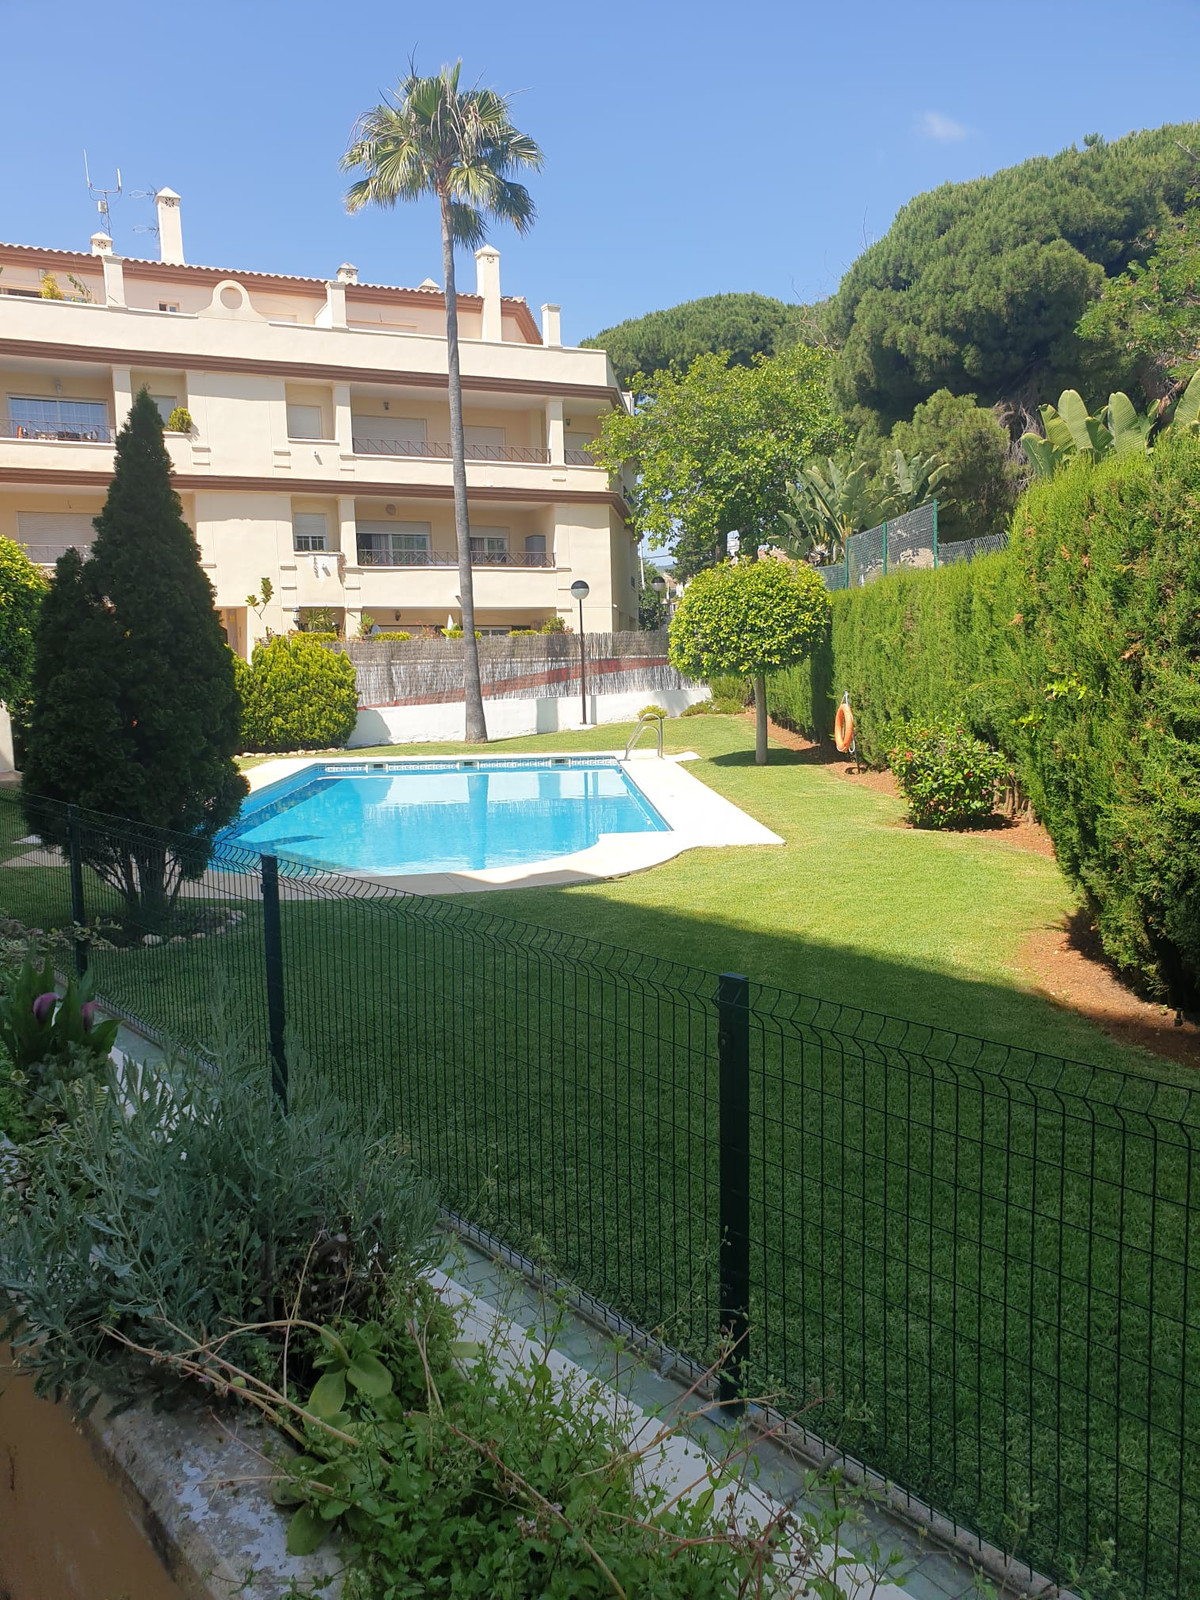 BANK REPOSSESSION Just released from the bank this lovely 2 bedroom apartment easy 2 min walk to on , Spain